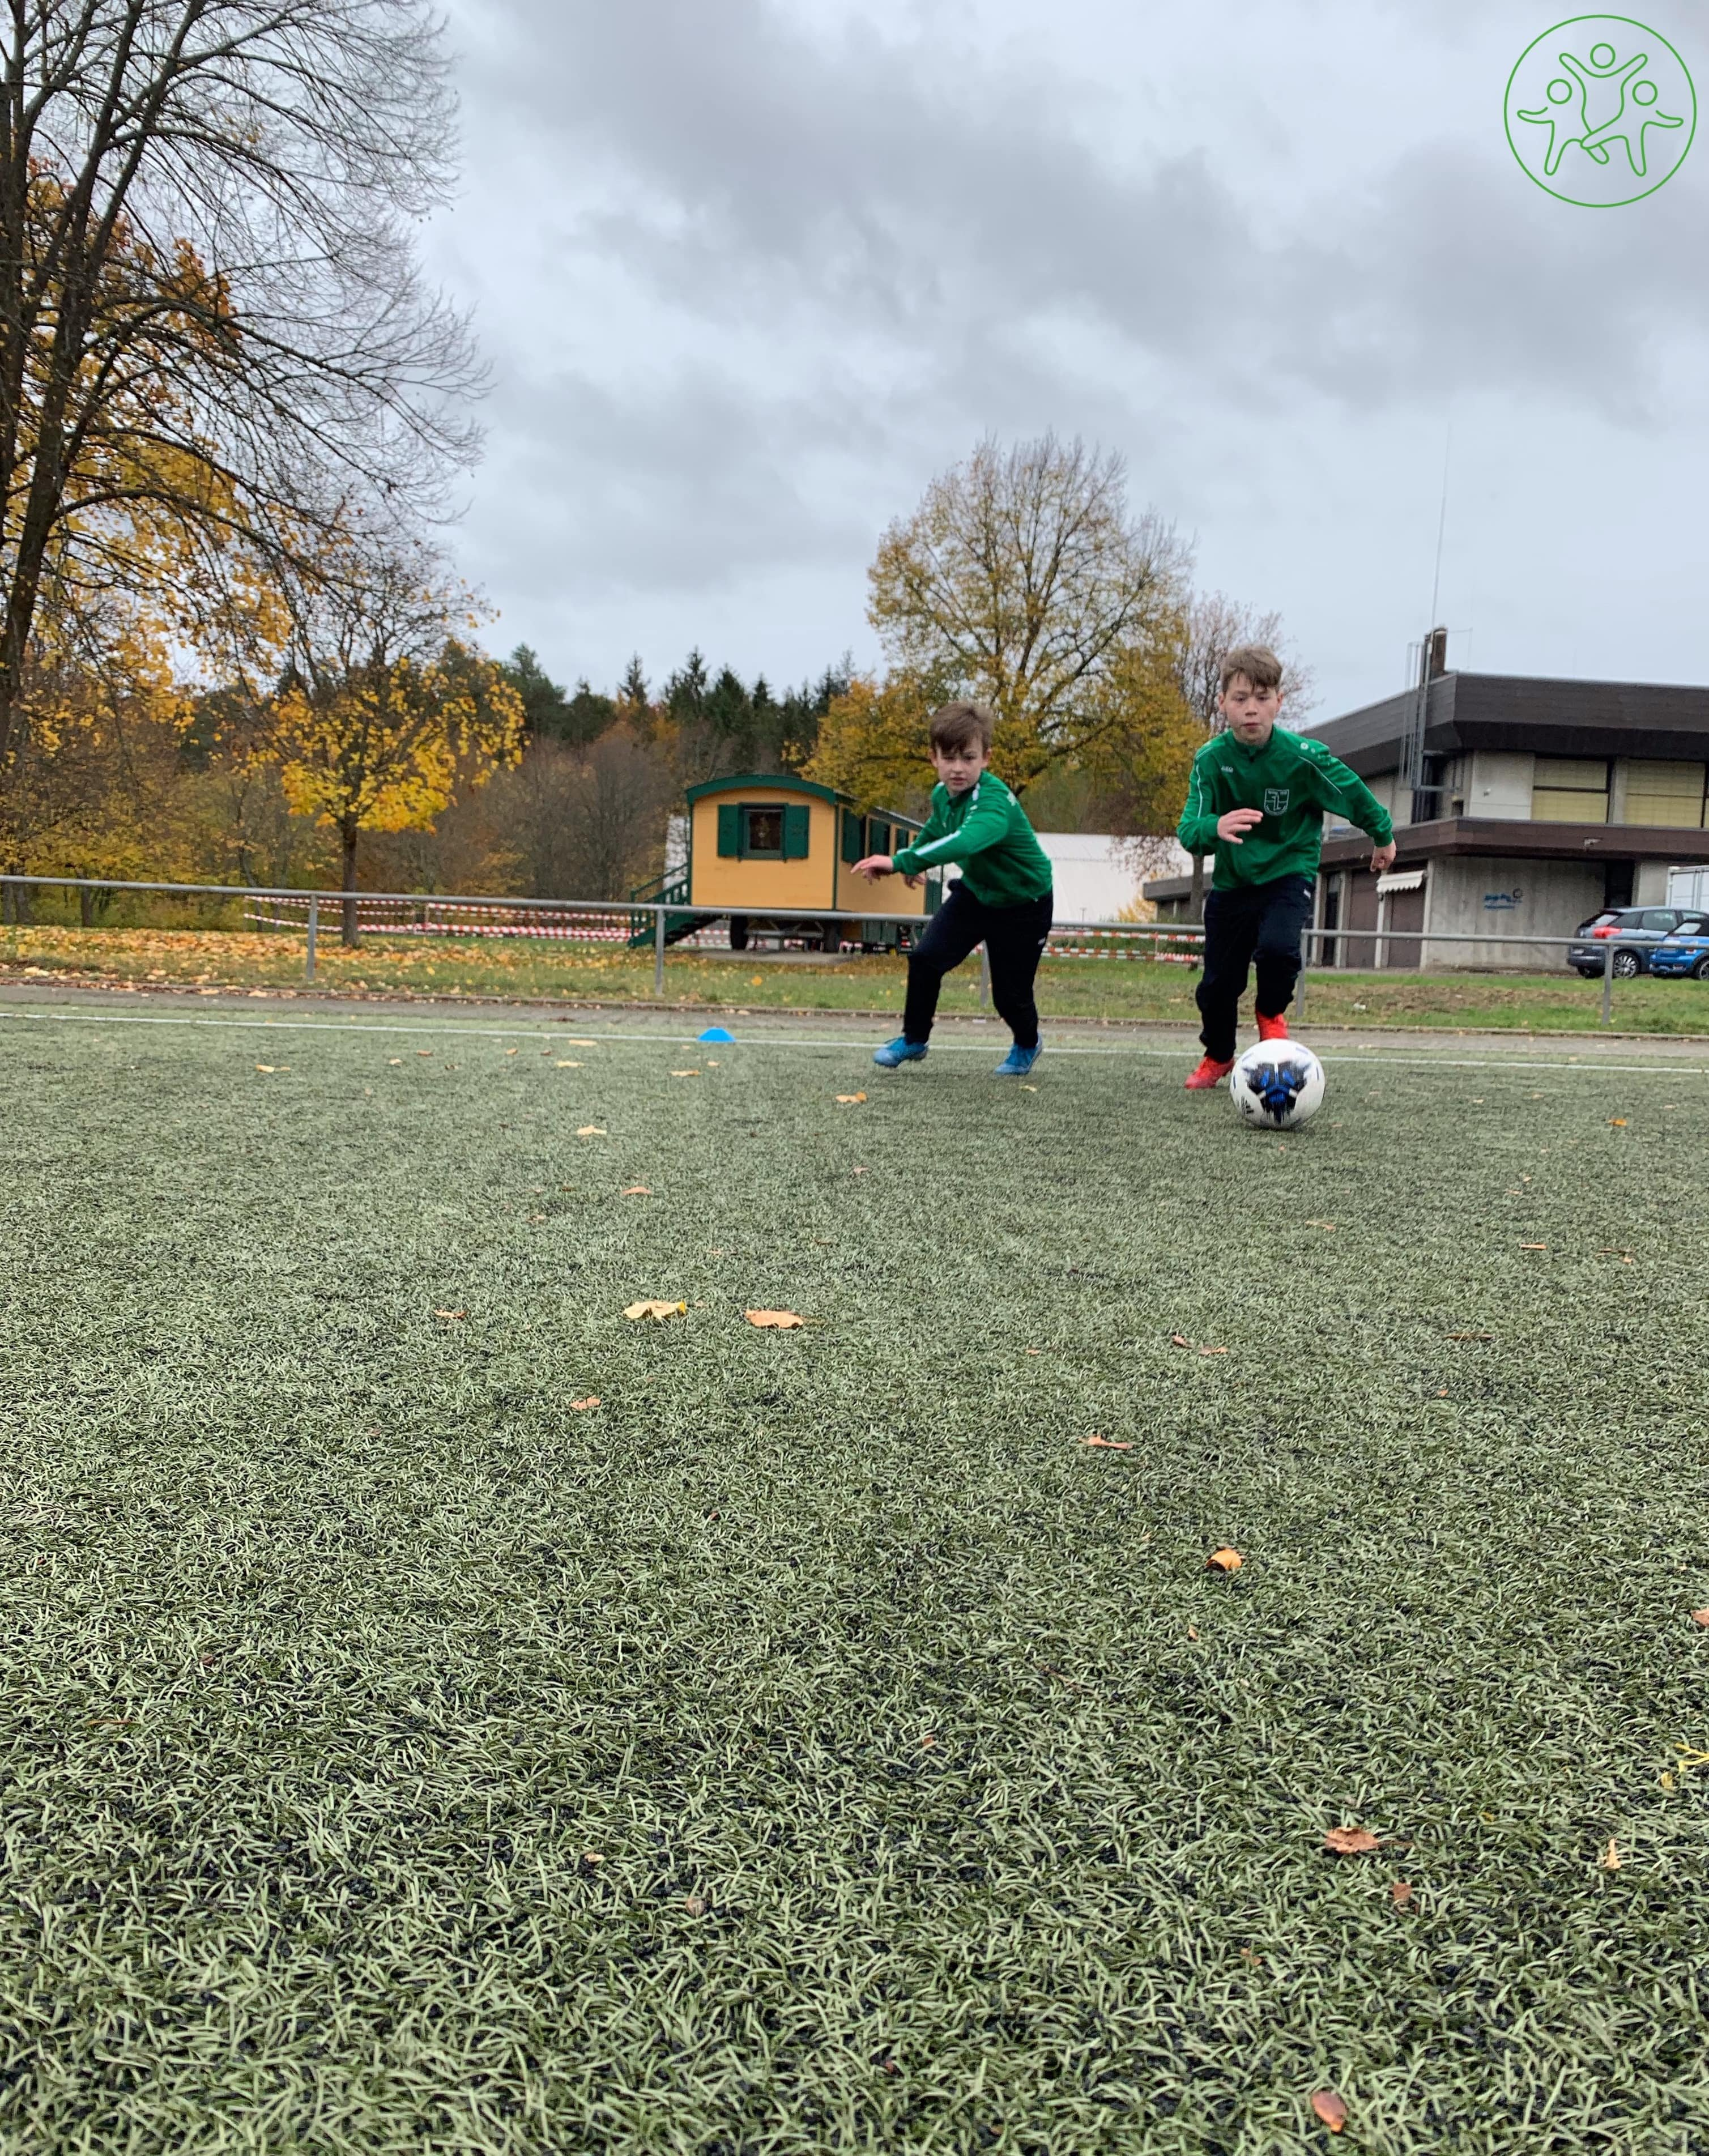 Fussball-Camp-Dribbling-Eins-vs-Eins-Spass